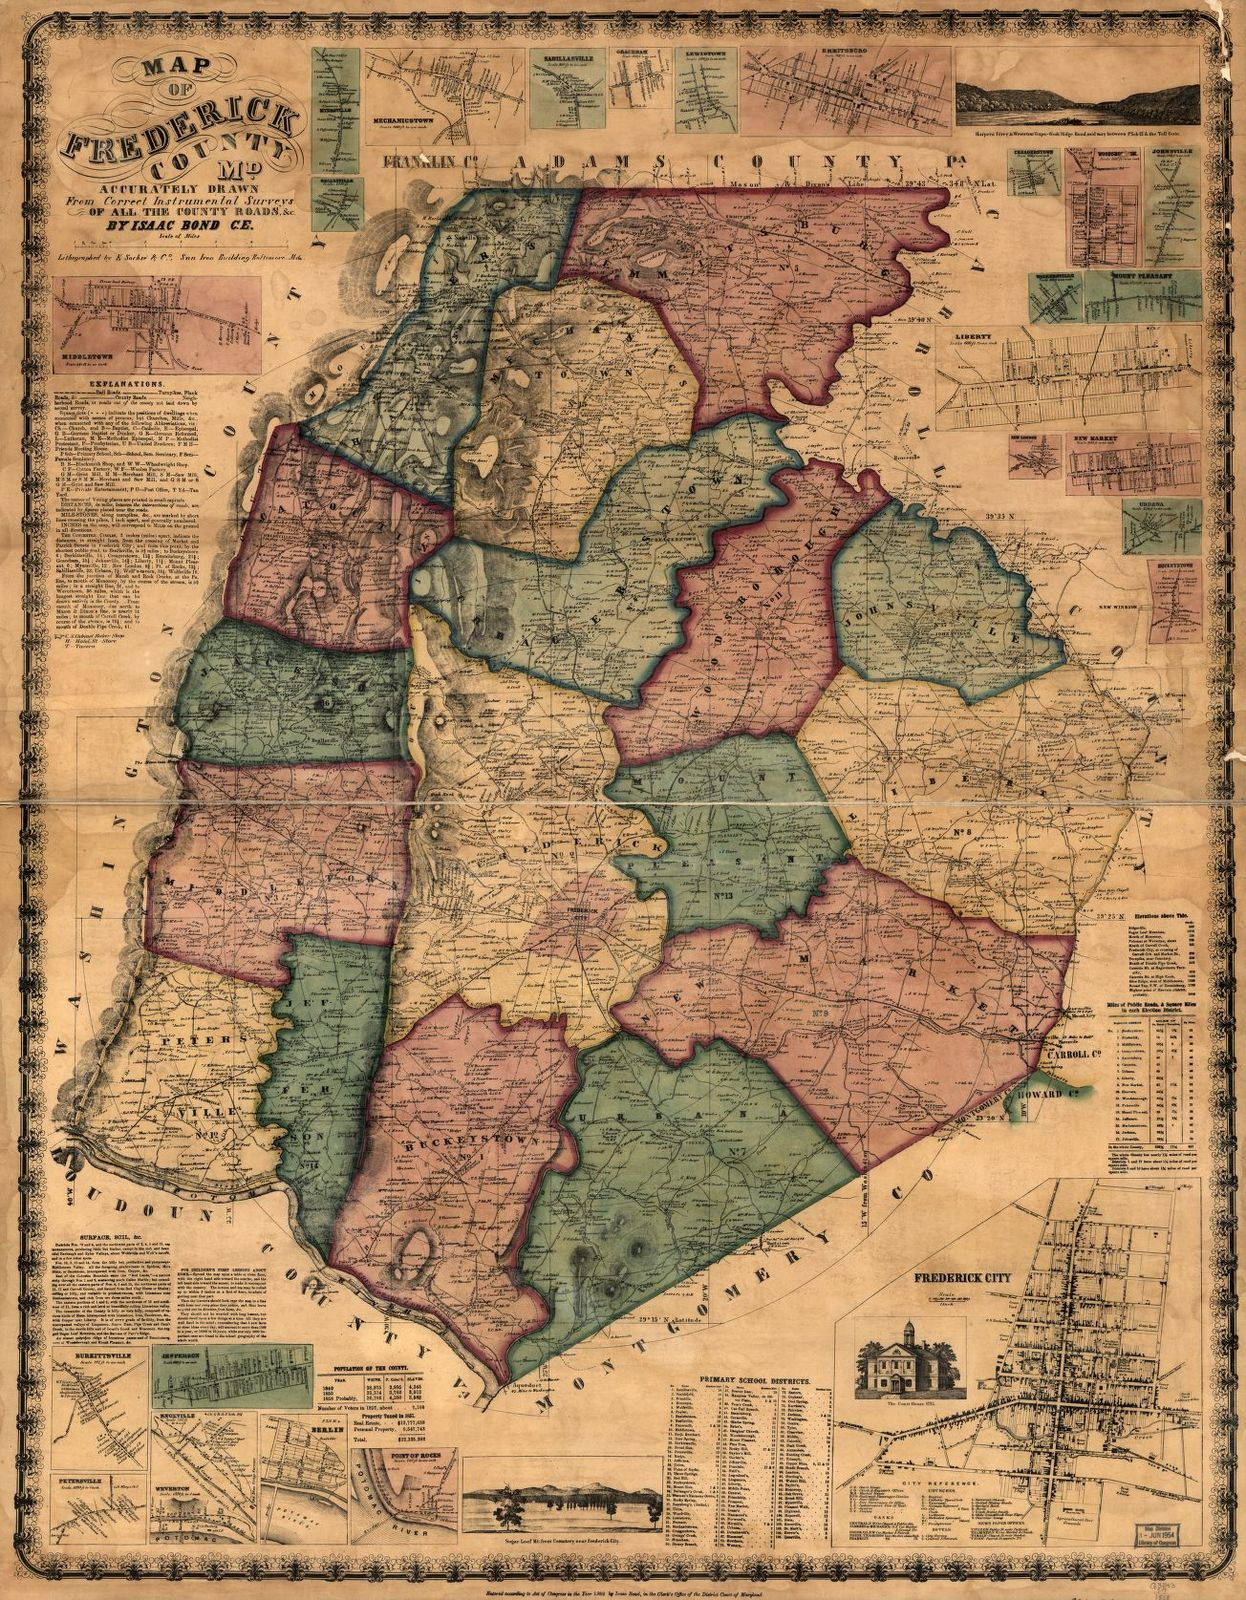 Map of Frederick County, Md. accurately drawn from correct instrumental surveys of all the county roads,